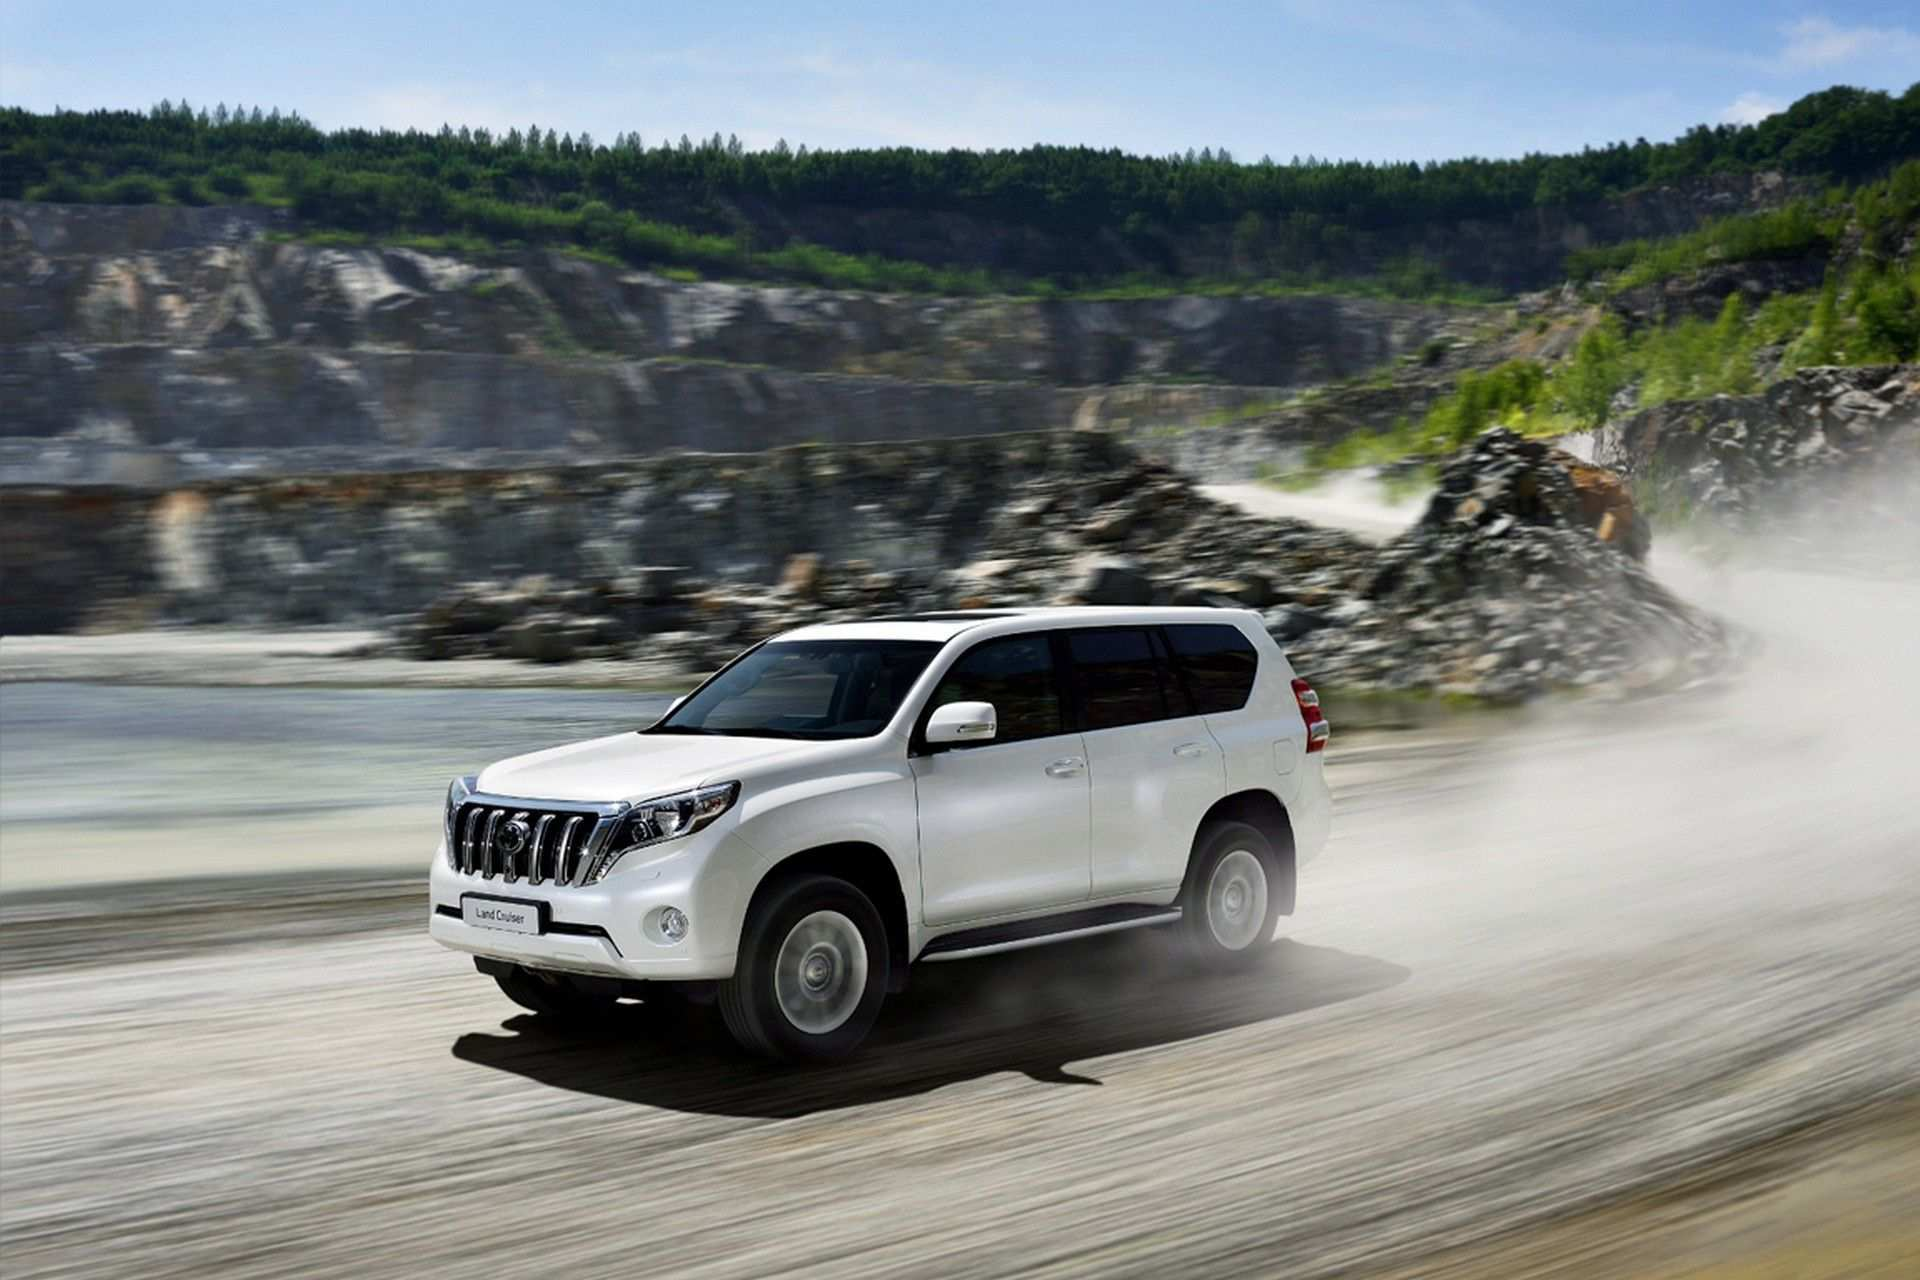 46 Best Review Toyota Prado 2020 Spy Shots Images by Toyota Prado 2020 Spy Shots